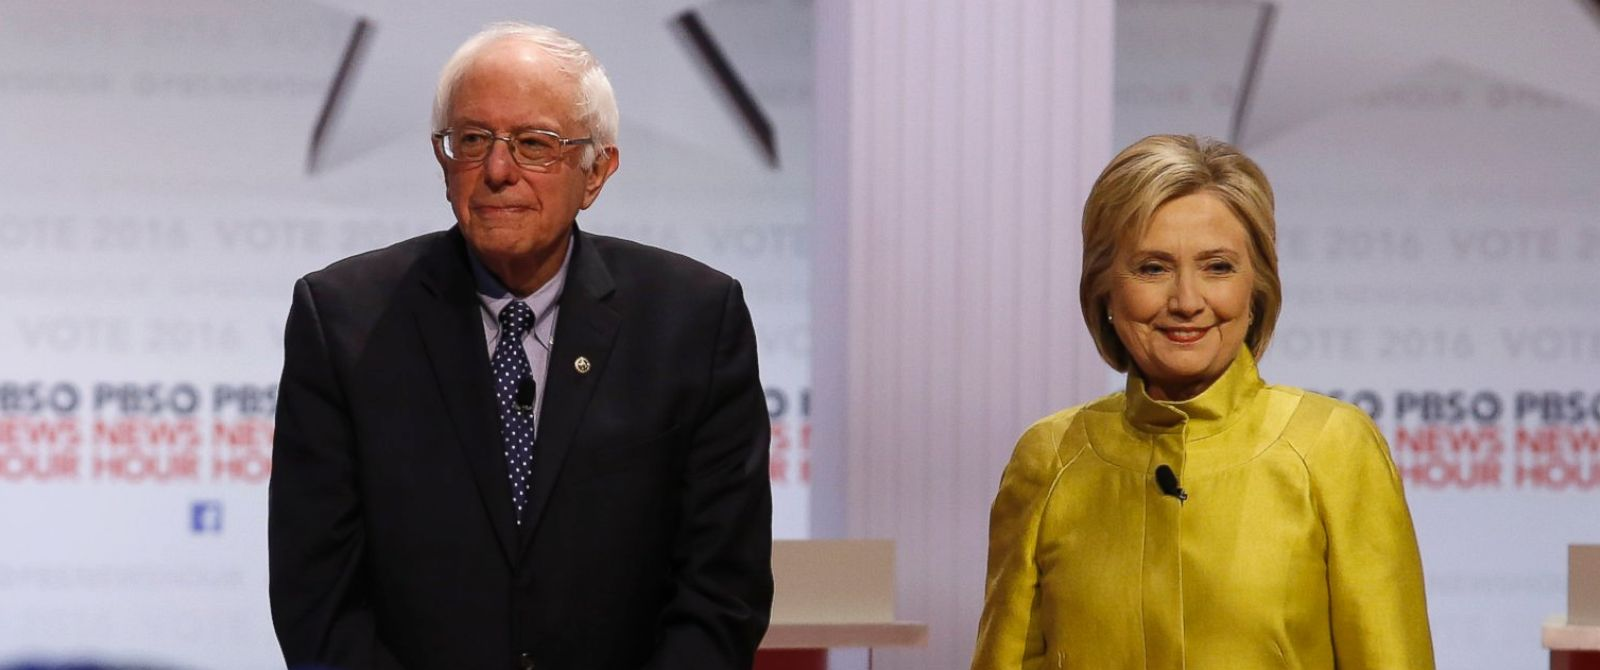 PHOTO: Democratic presidential candidates Sen. Bernie Sanders, I-Vt, left, and Hillary Clinton take the stage before a Democratic presidential primary debate at the University of Wisconsin-Milwaukee, Feb. 12, 2016, in Milwaukee.